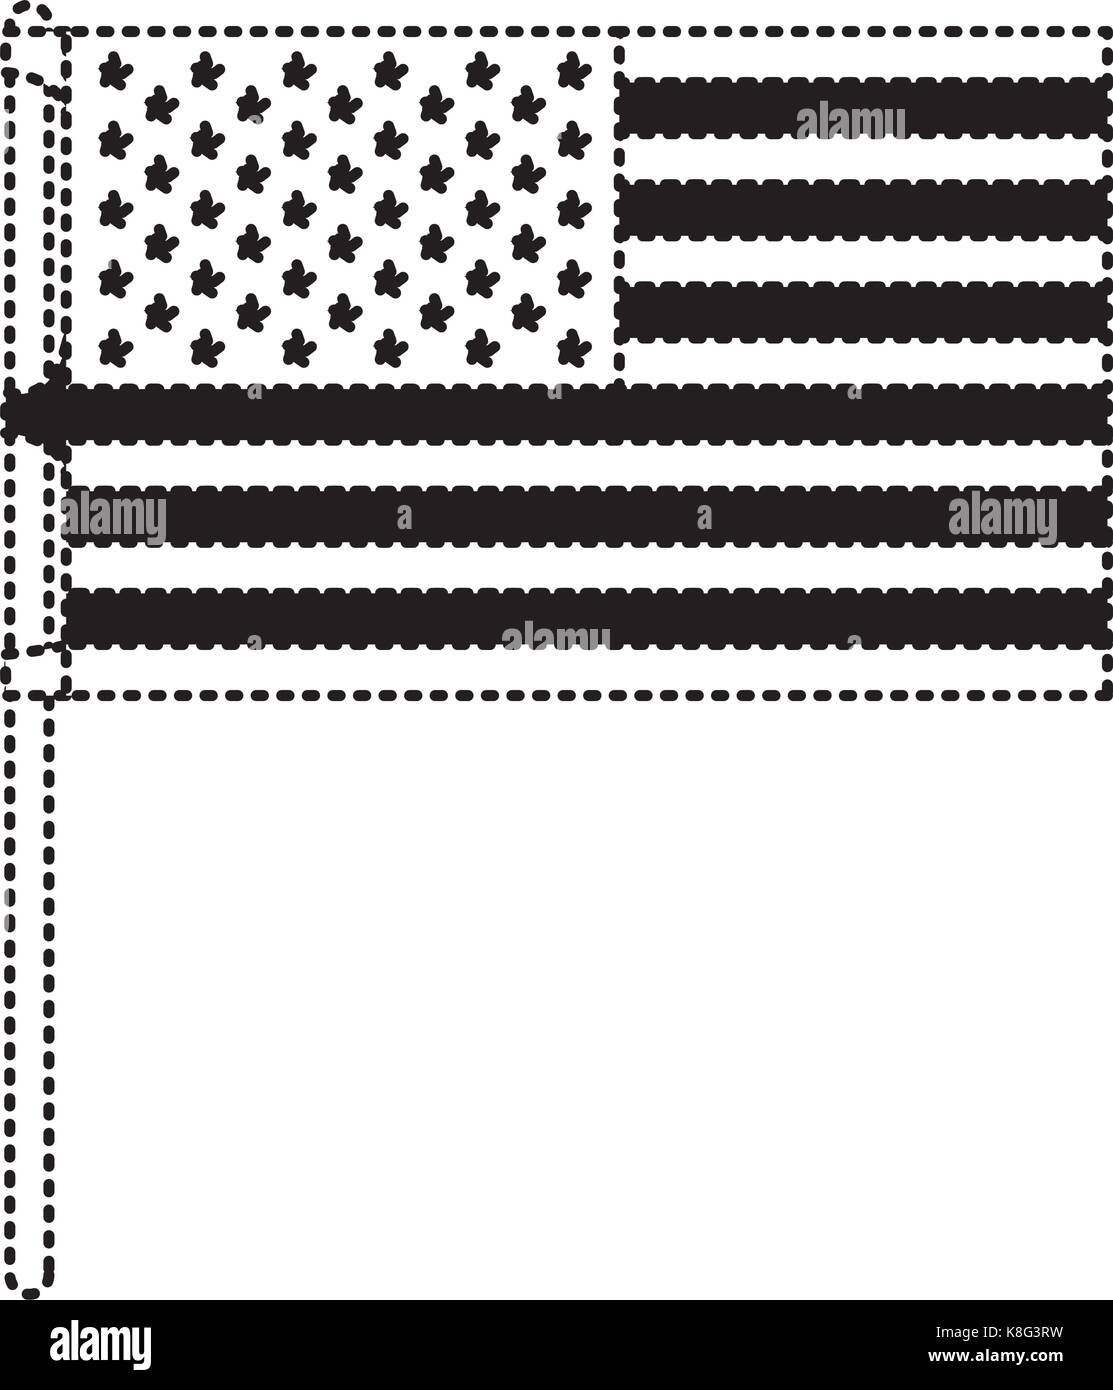 flag united states of america in flagpole and black silhouette dotted - Stock Image